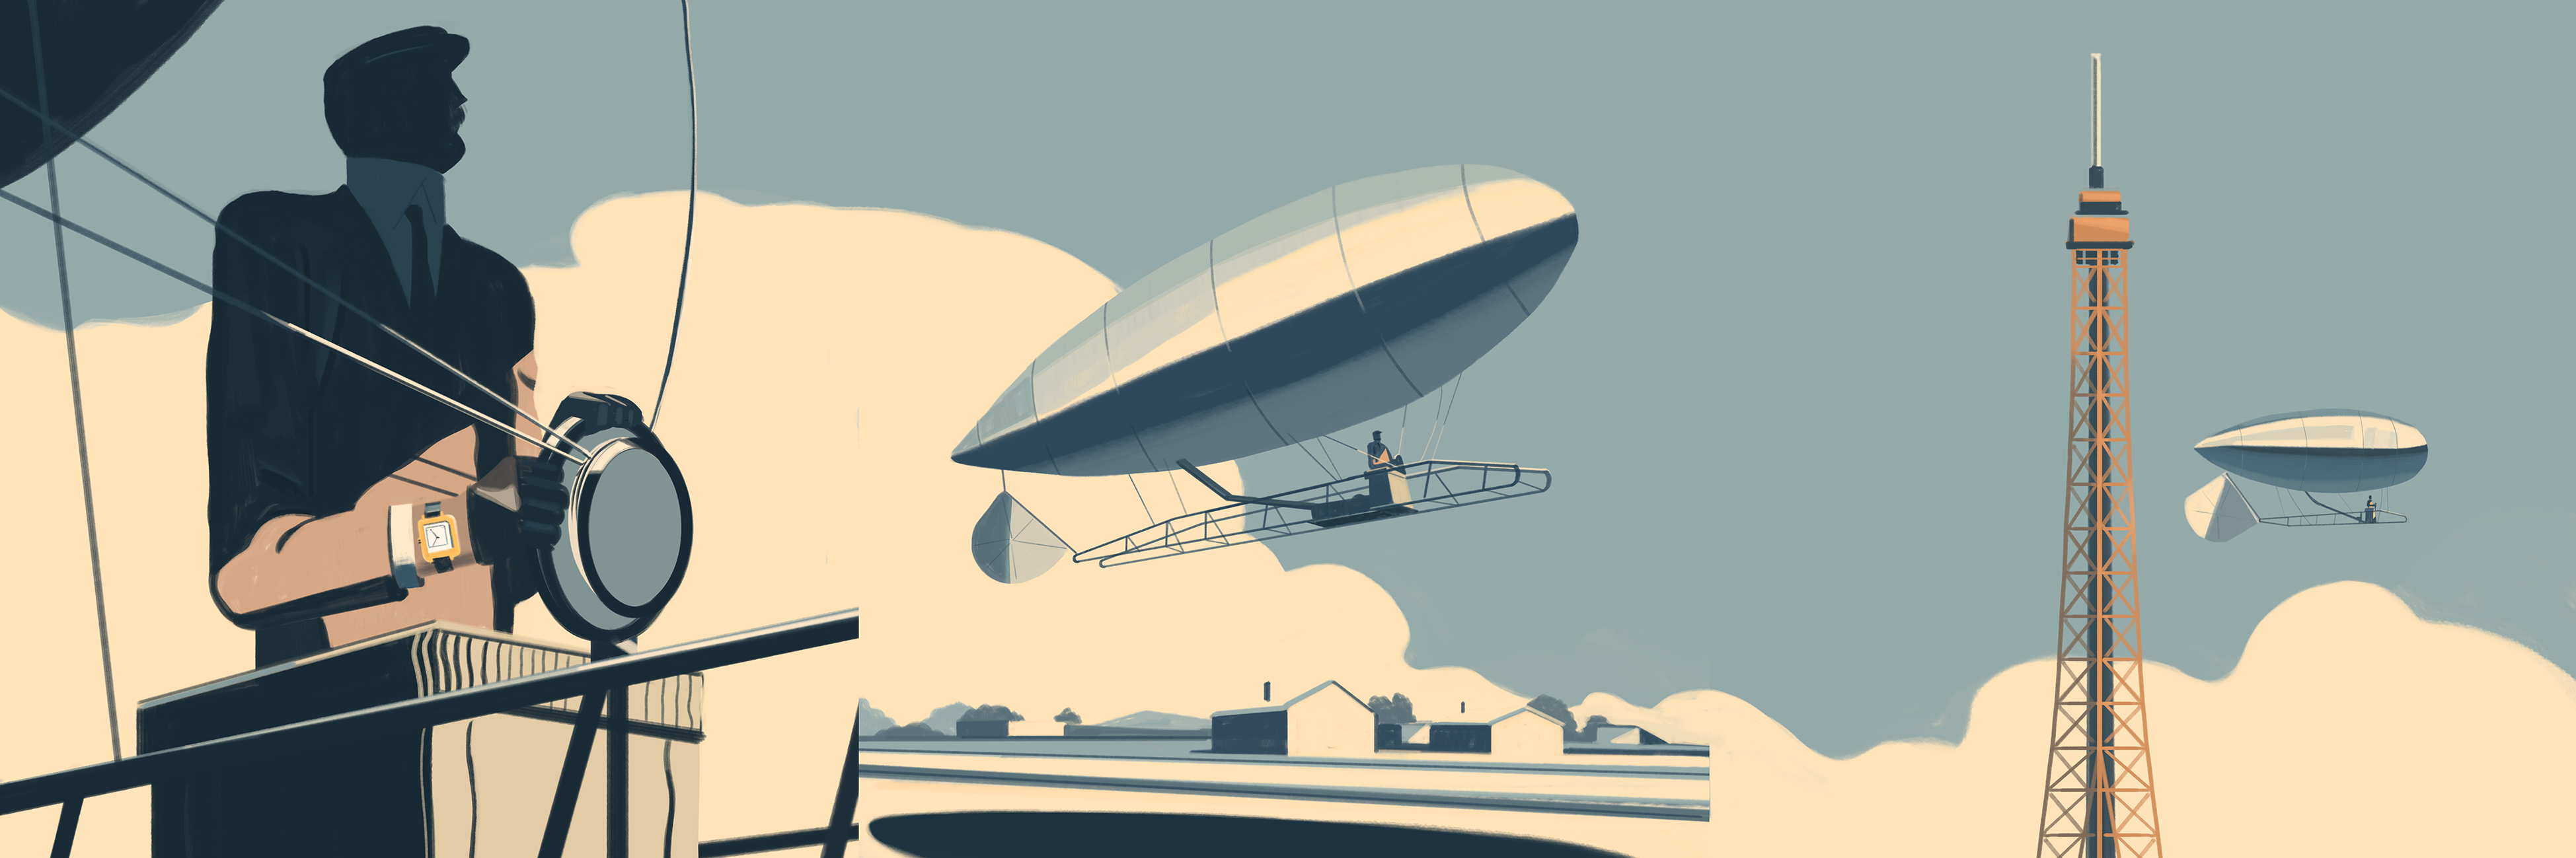 A story written in the clouds, Emiliano Ponzi 4